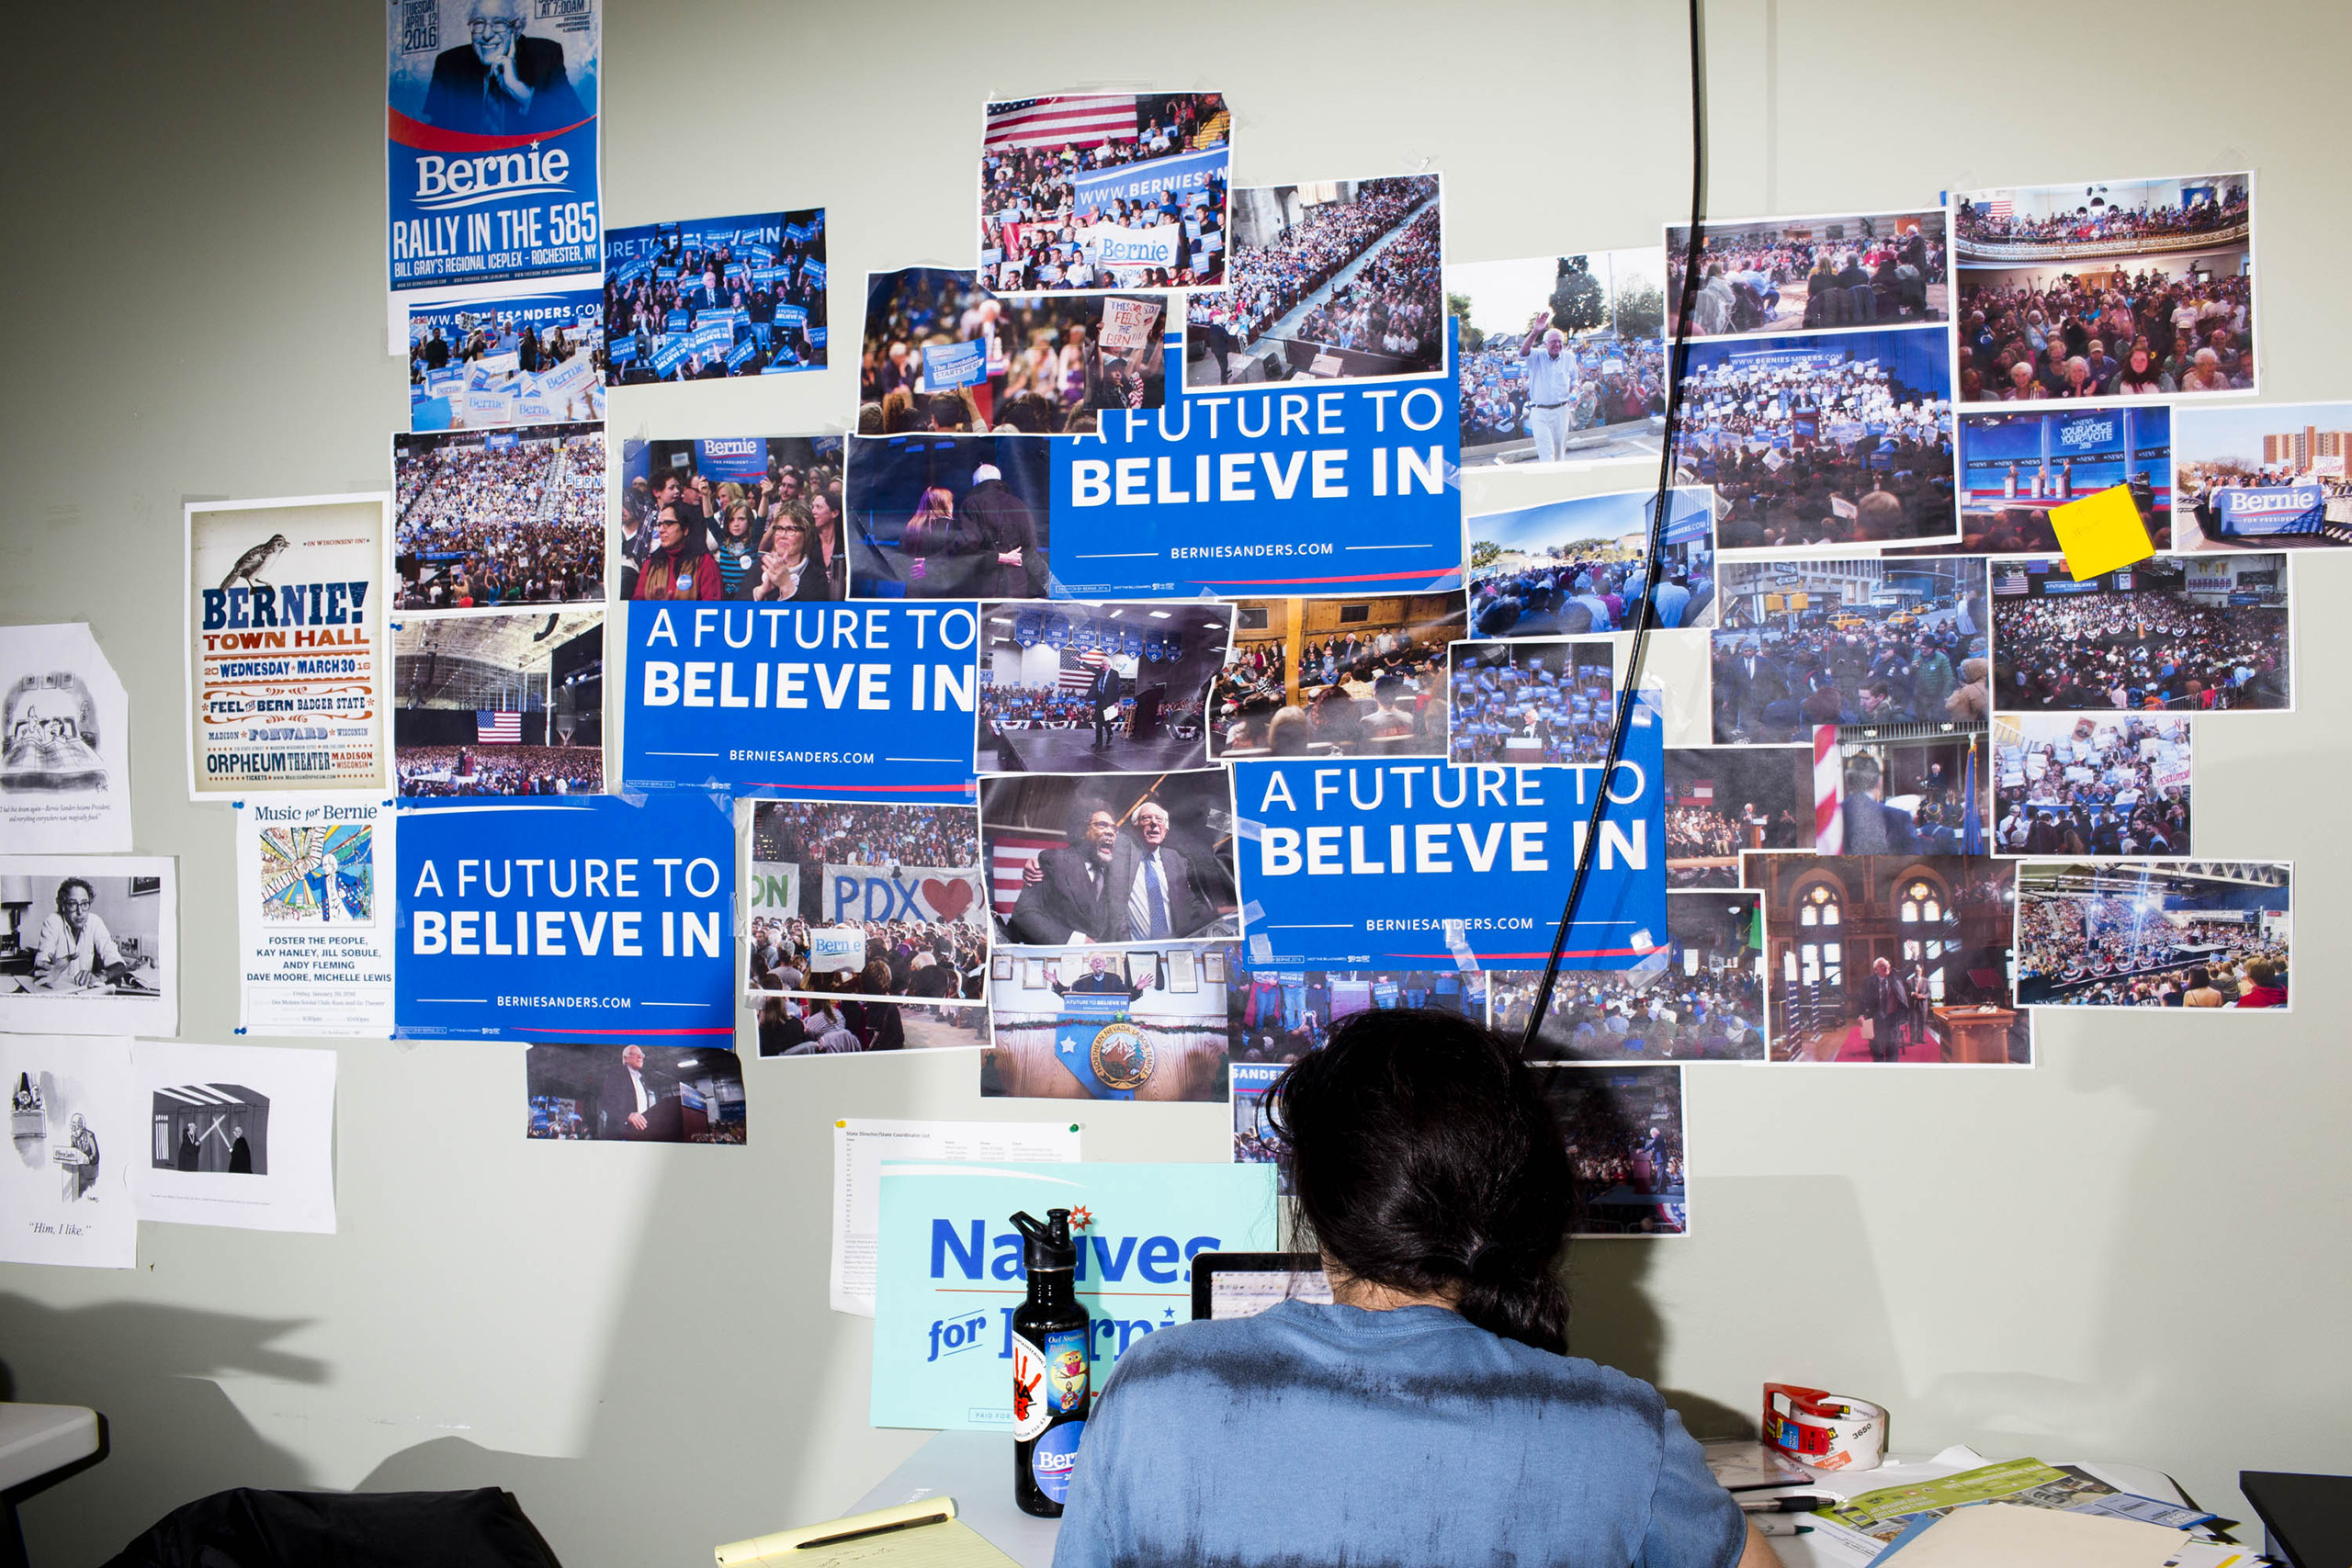 A worker at the campaign headquarters of Bernie Sanders on May 23, 2016, in Burlington, VT.